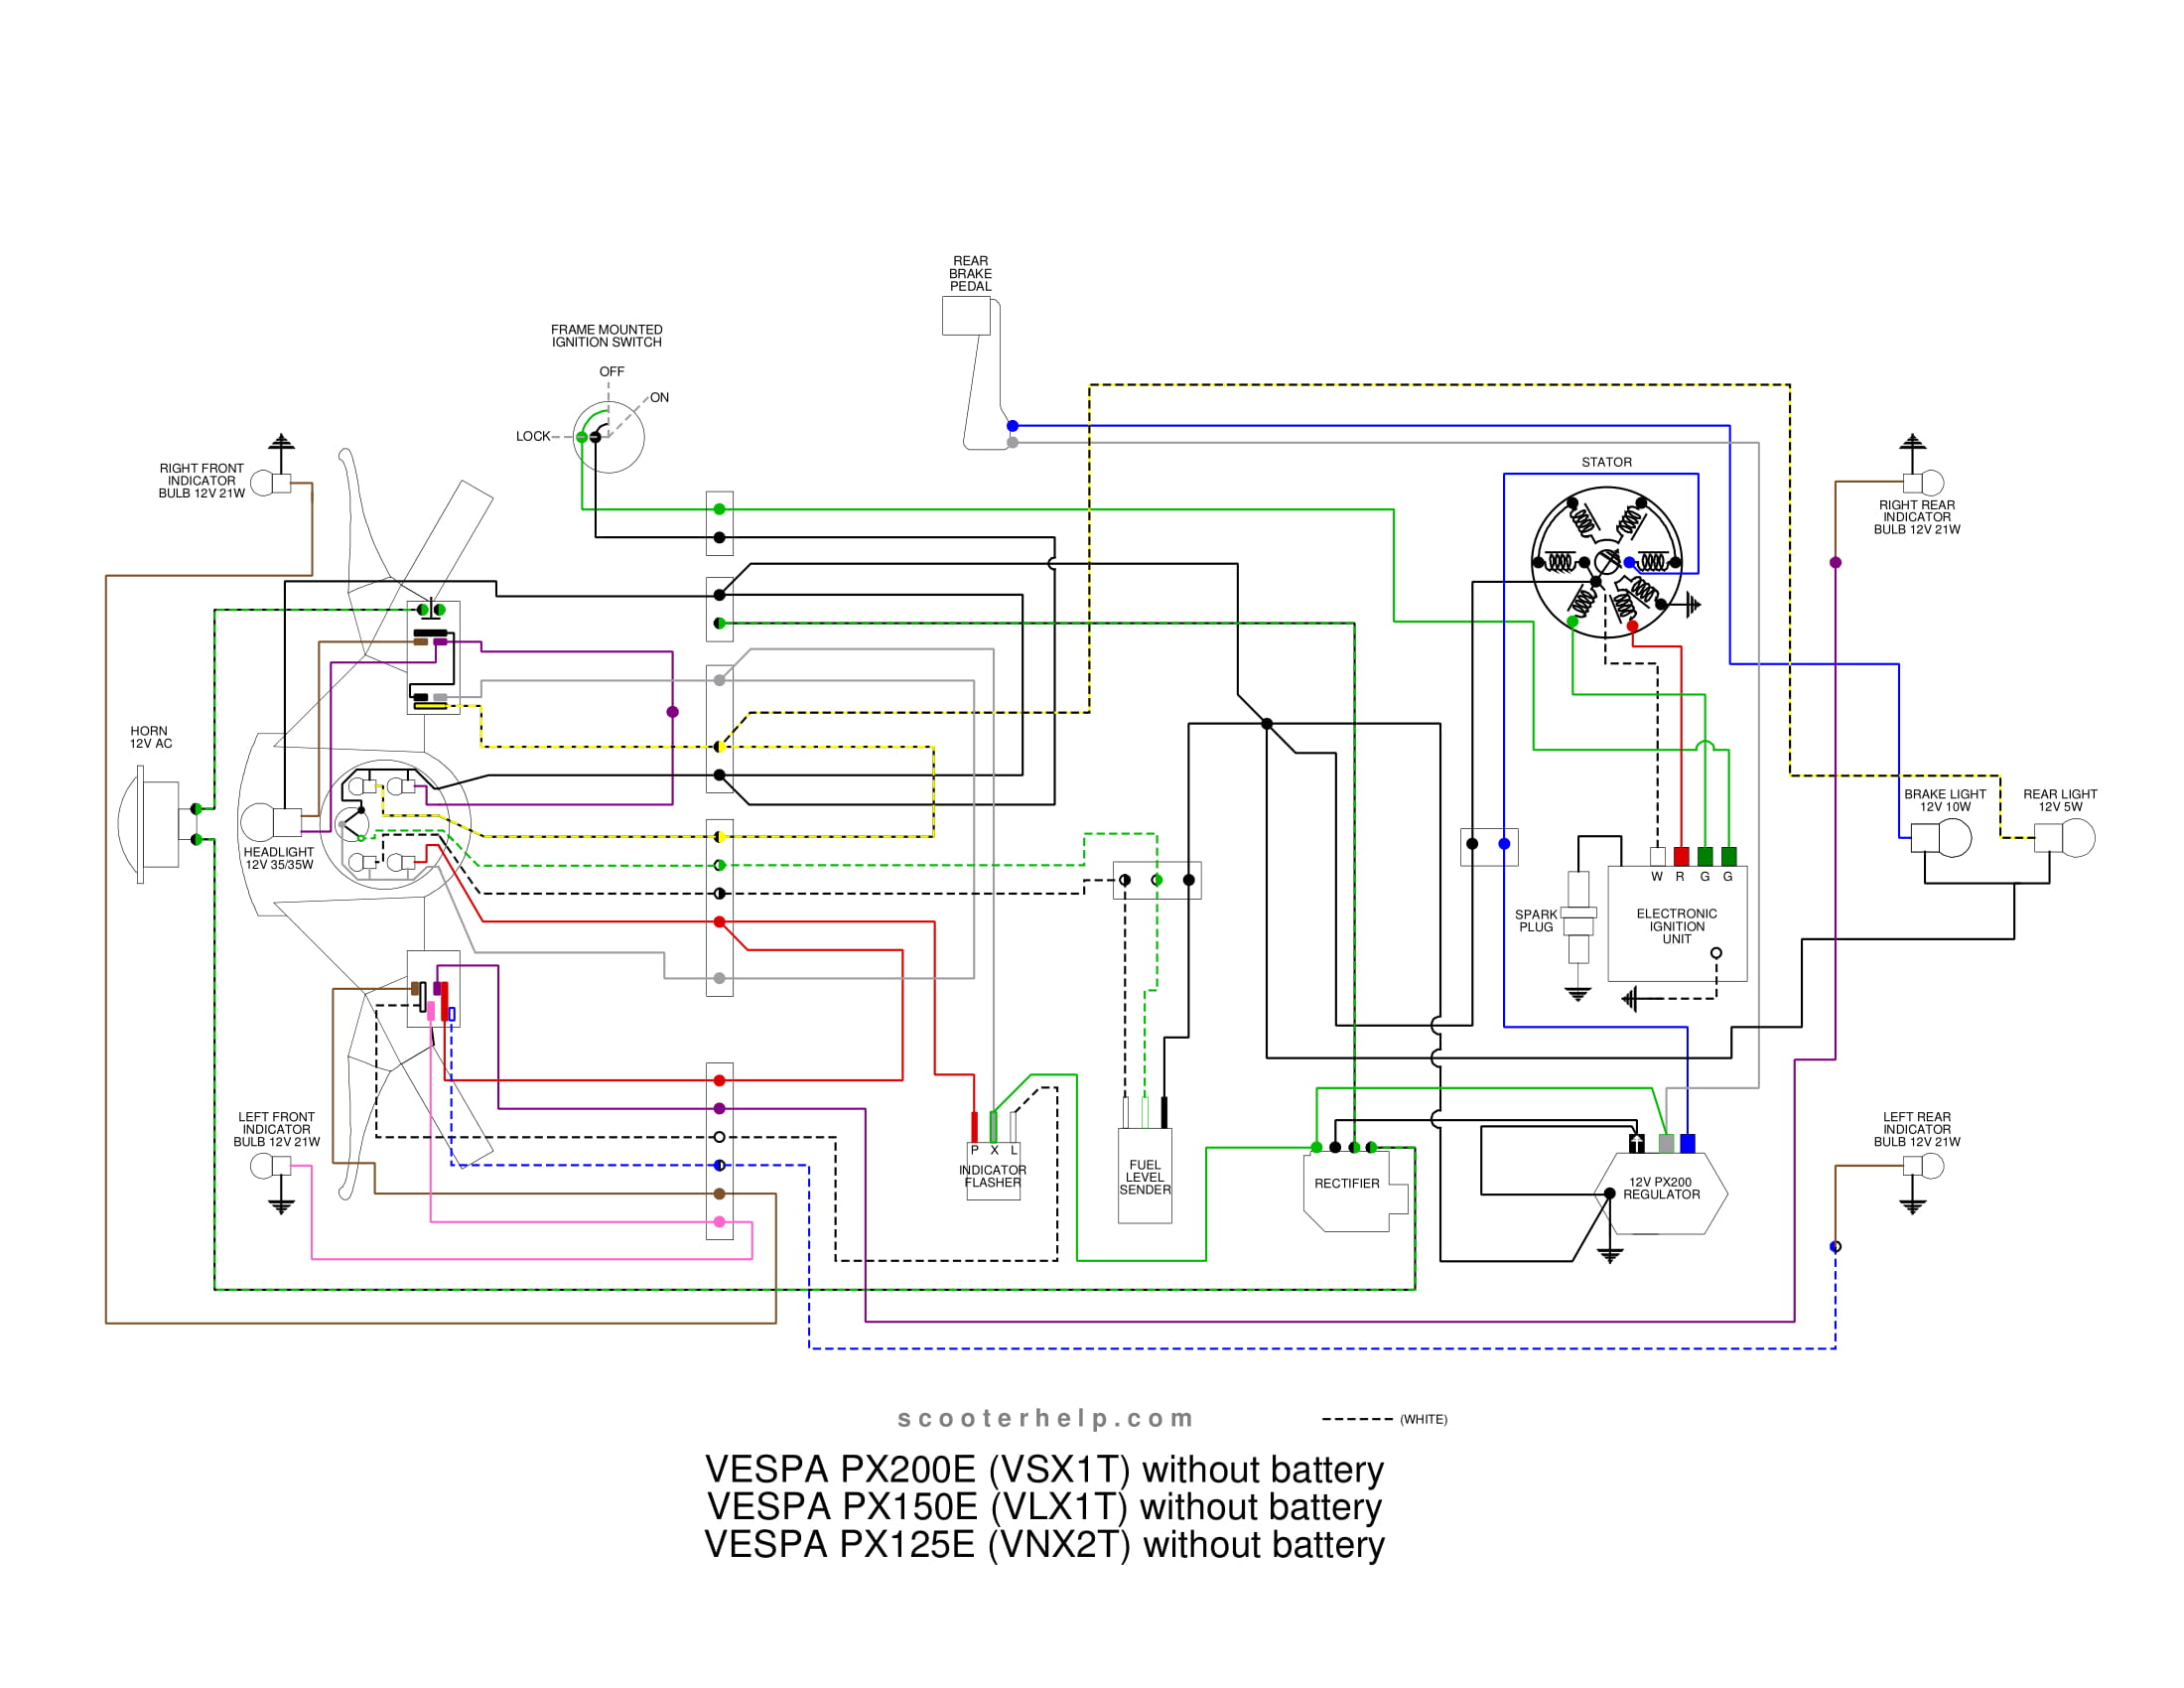 VSX1T.px200e.nobatt scooter help px125e (vnx2t) vespa p125x wiring diagram at eliteediting.co